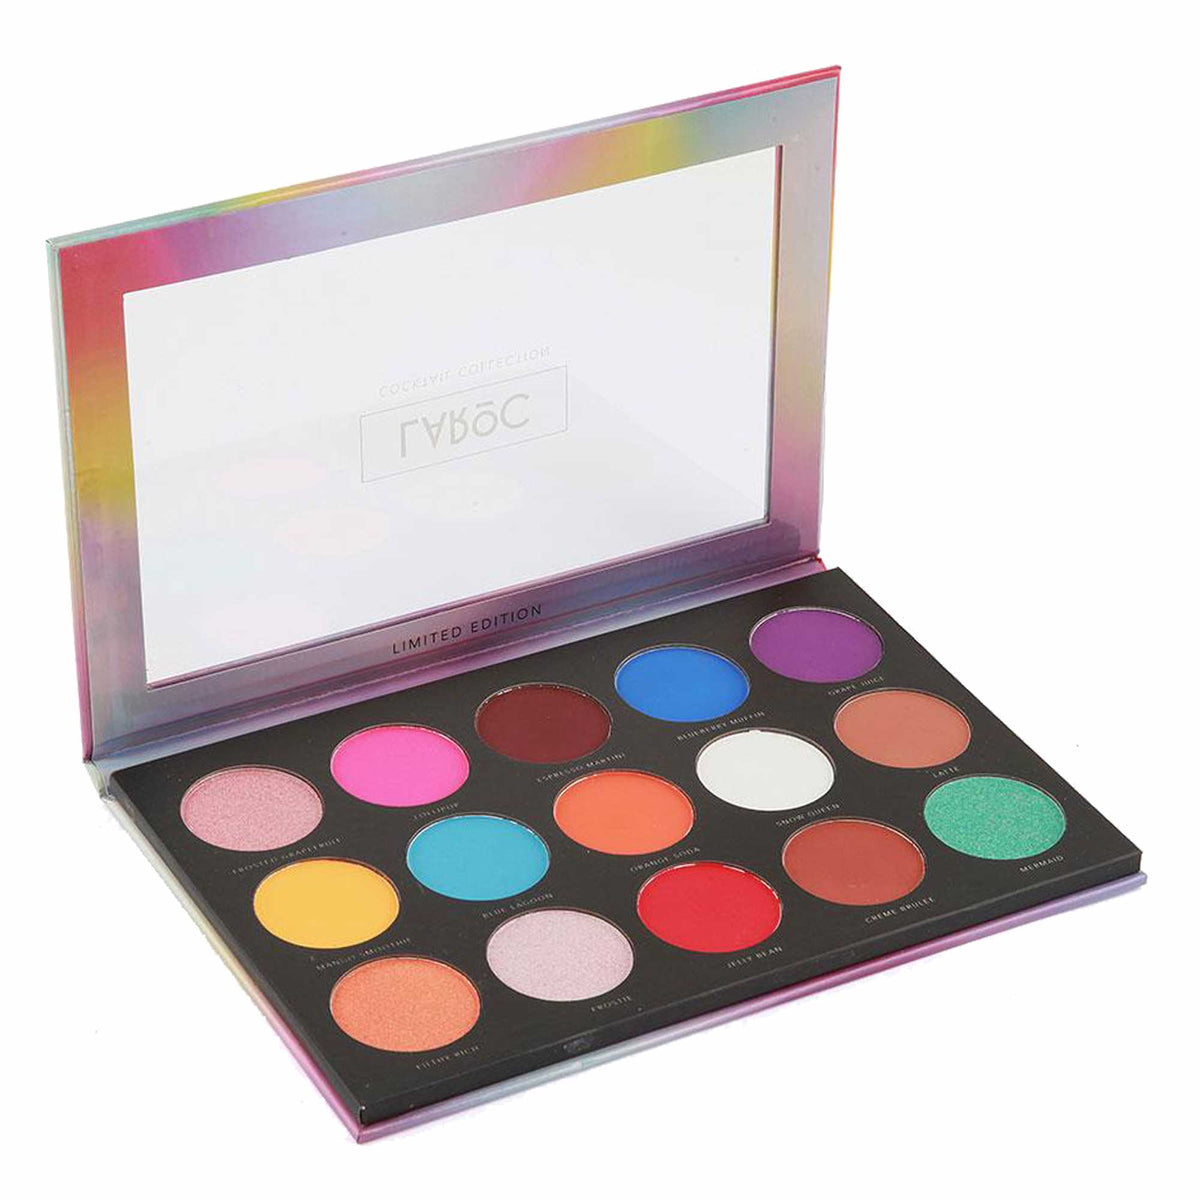 LaRoc Cocktail Eyeshadow 15 Palette - Fruit Punch